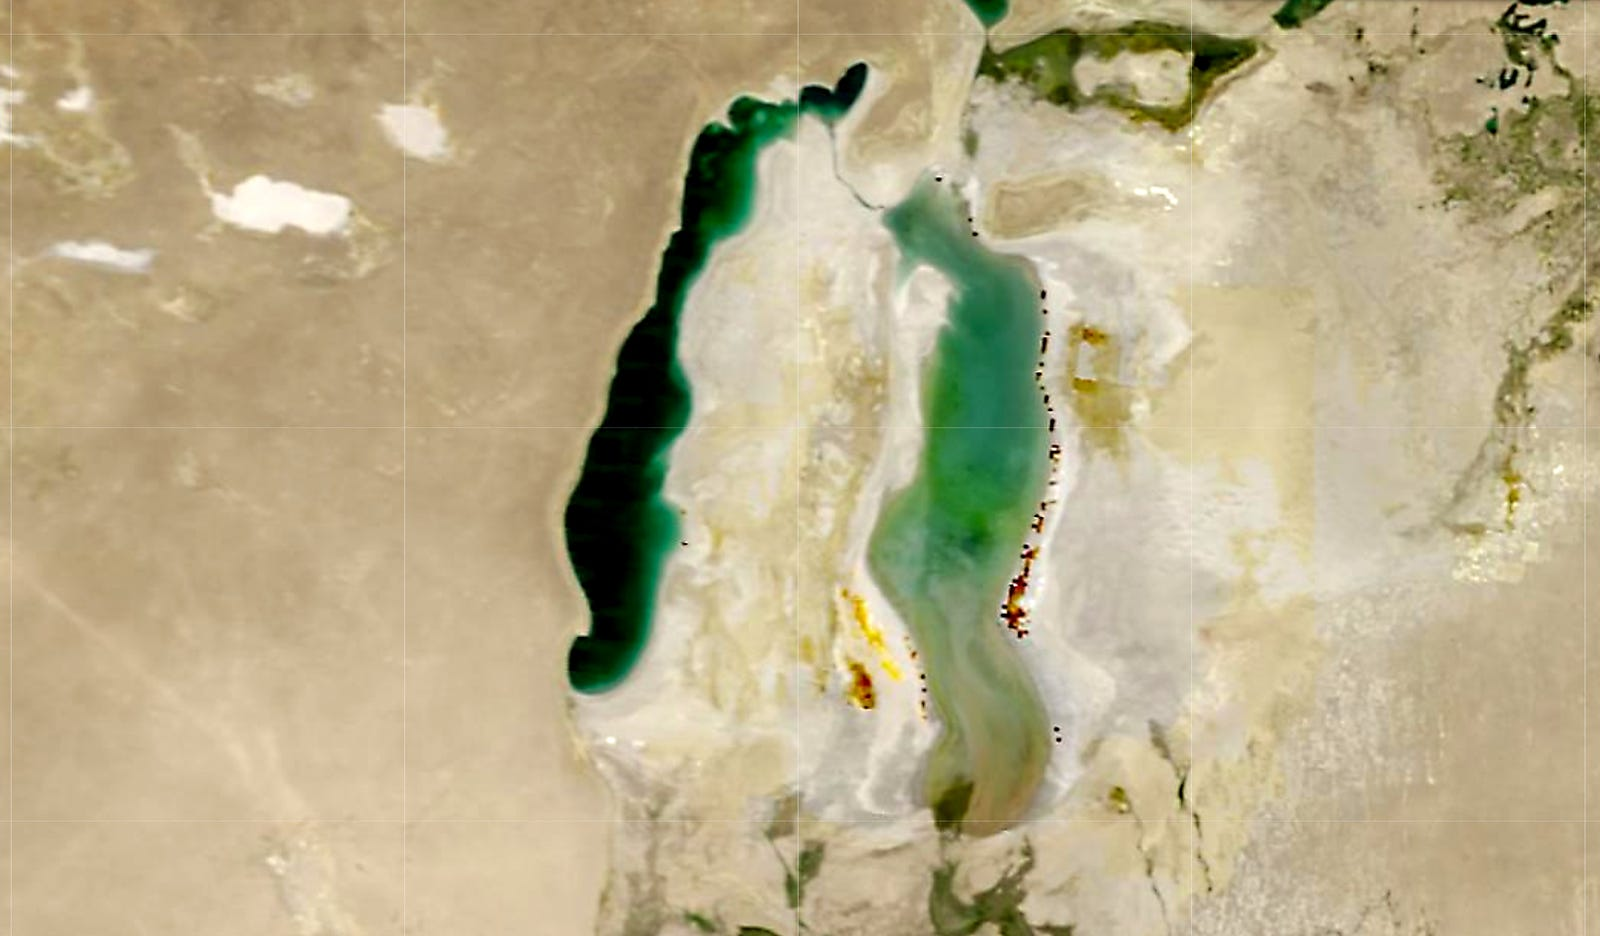 Landsat imagery shows the Aral Sea in July 2010 with water in its eastern lobe.